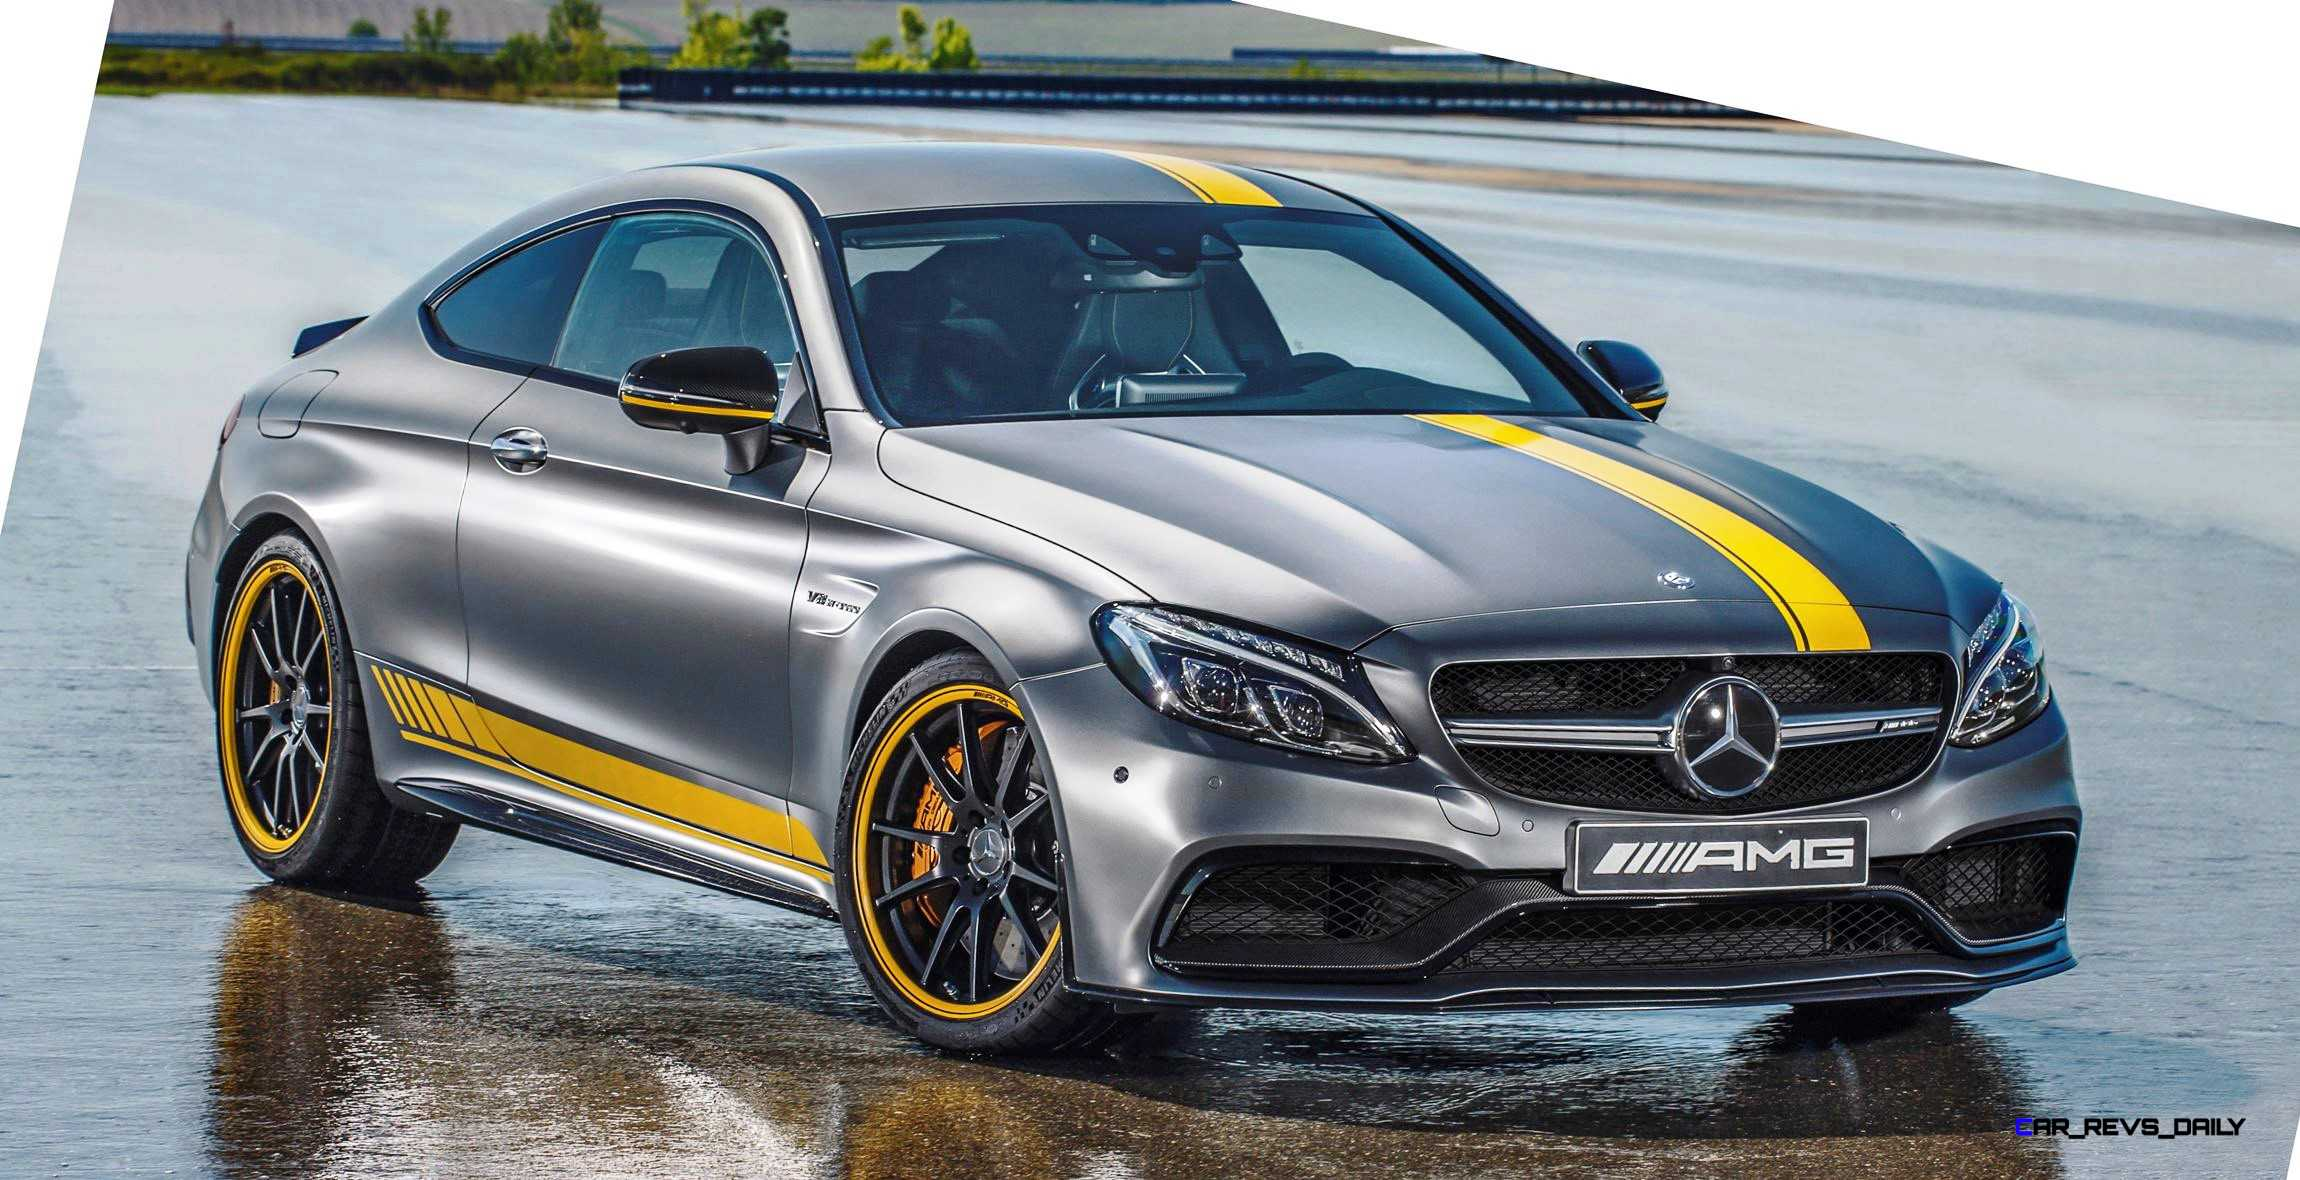 Mercedes amg c 63 s coupe edition 1 2016 wallpapers and hd images - Special Model Mercedes Amg C 63 Coup Edition 1 And The Mercedes Amg C 63 Dtm Racing Coup